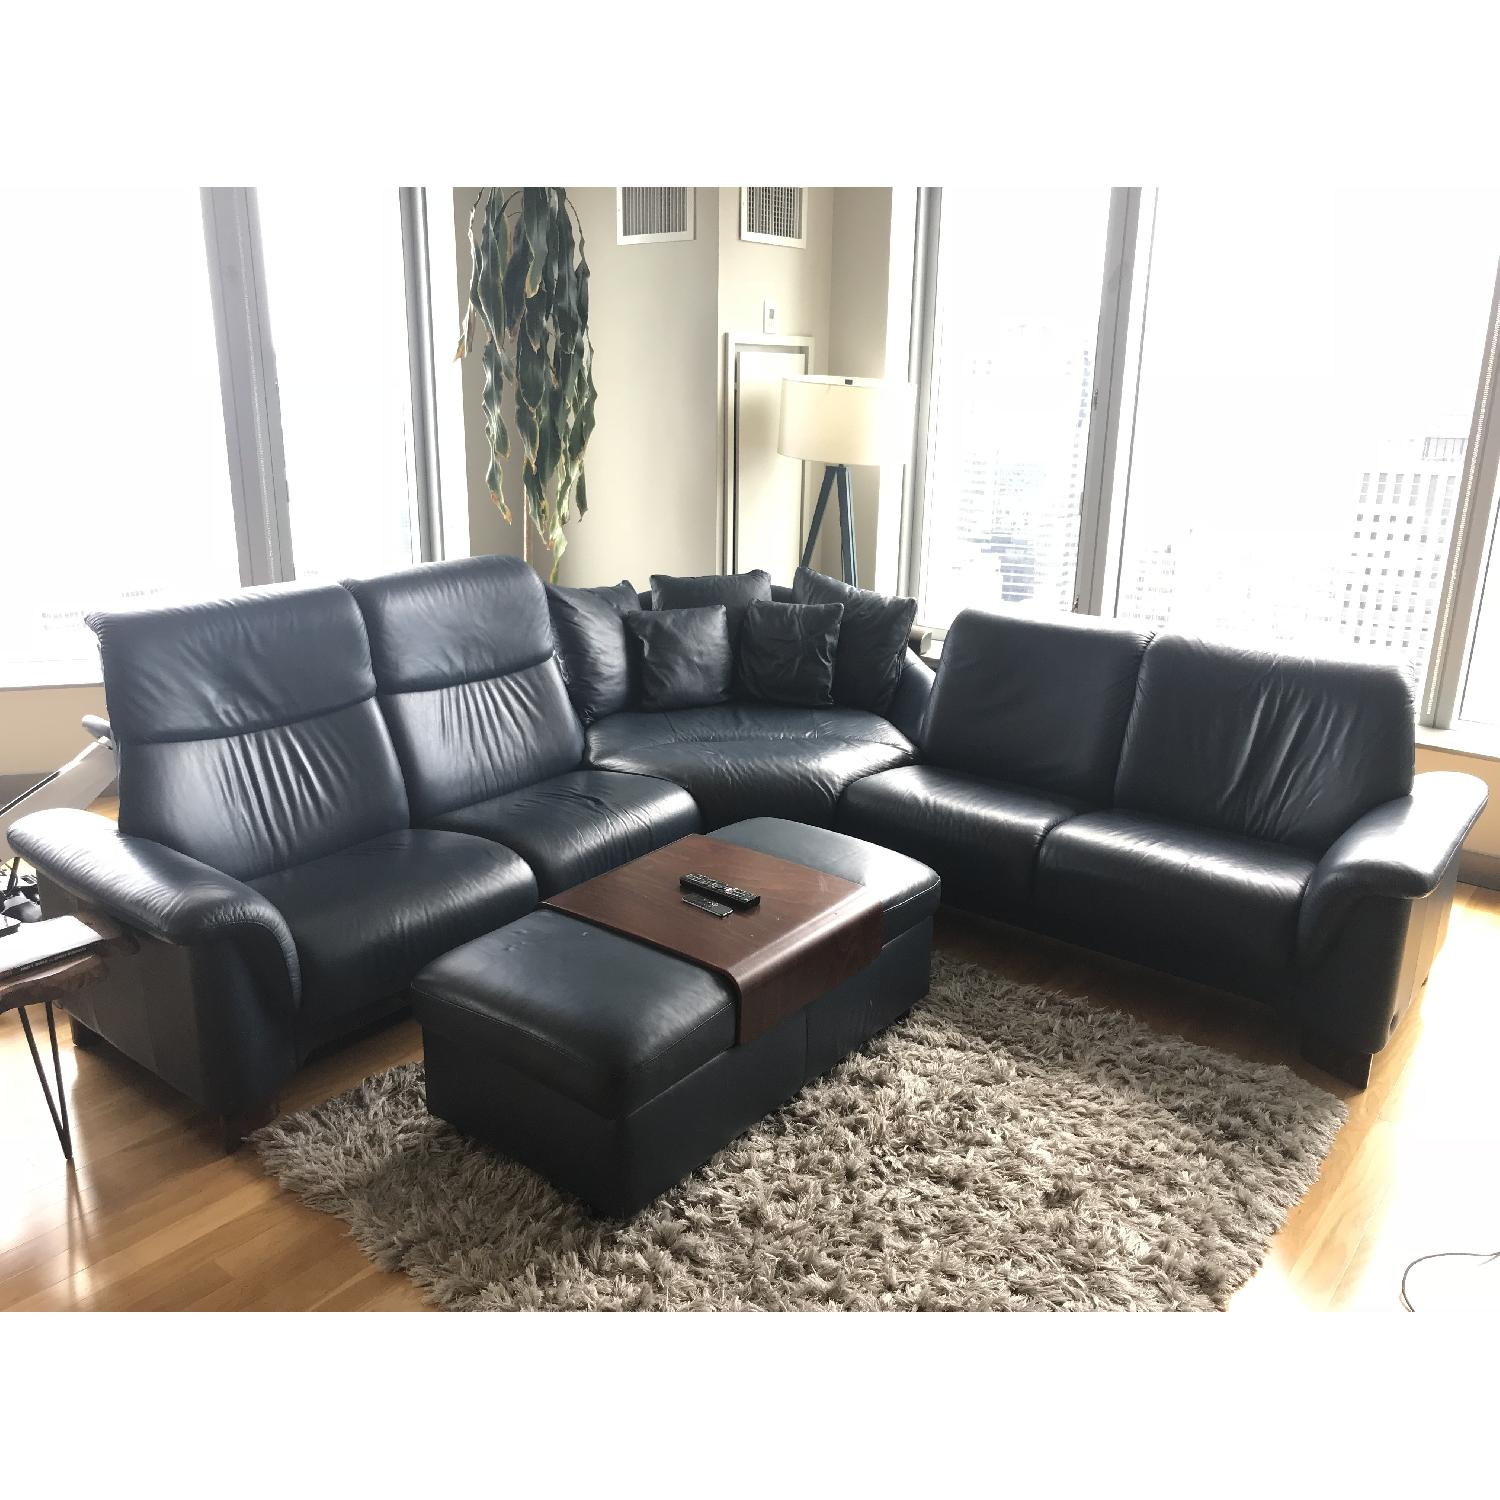 Ekornes 5 Piece Leather Sectional Sofa w/ Matching Ottoman